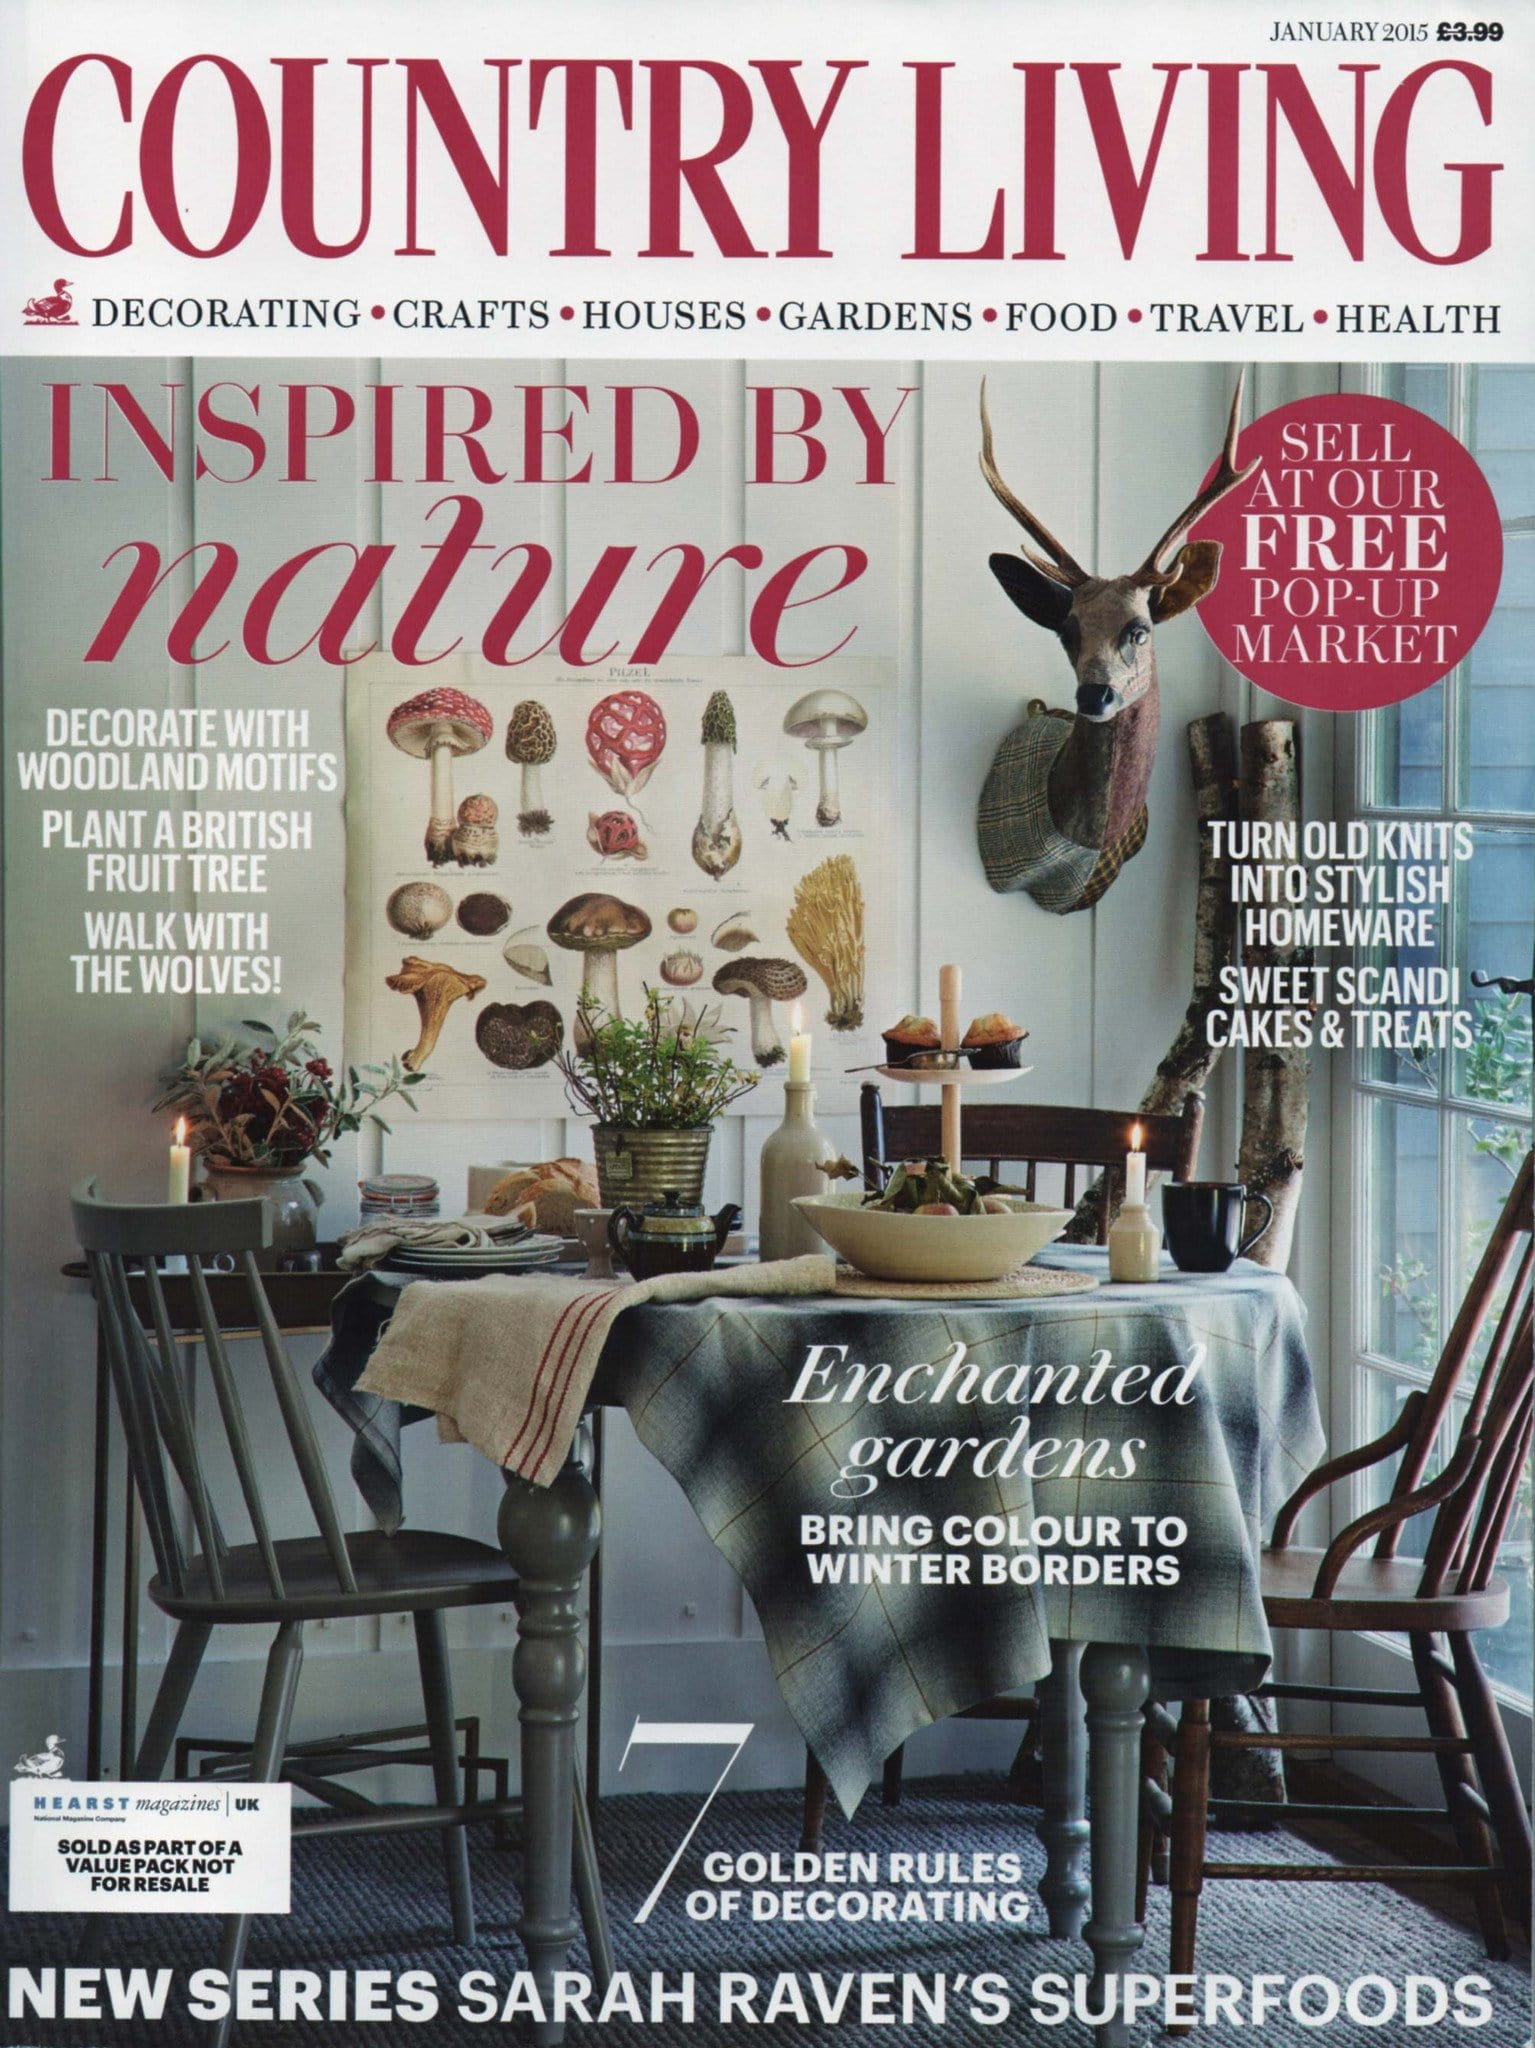 Country Living Magazine Jan 2015